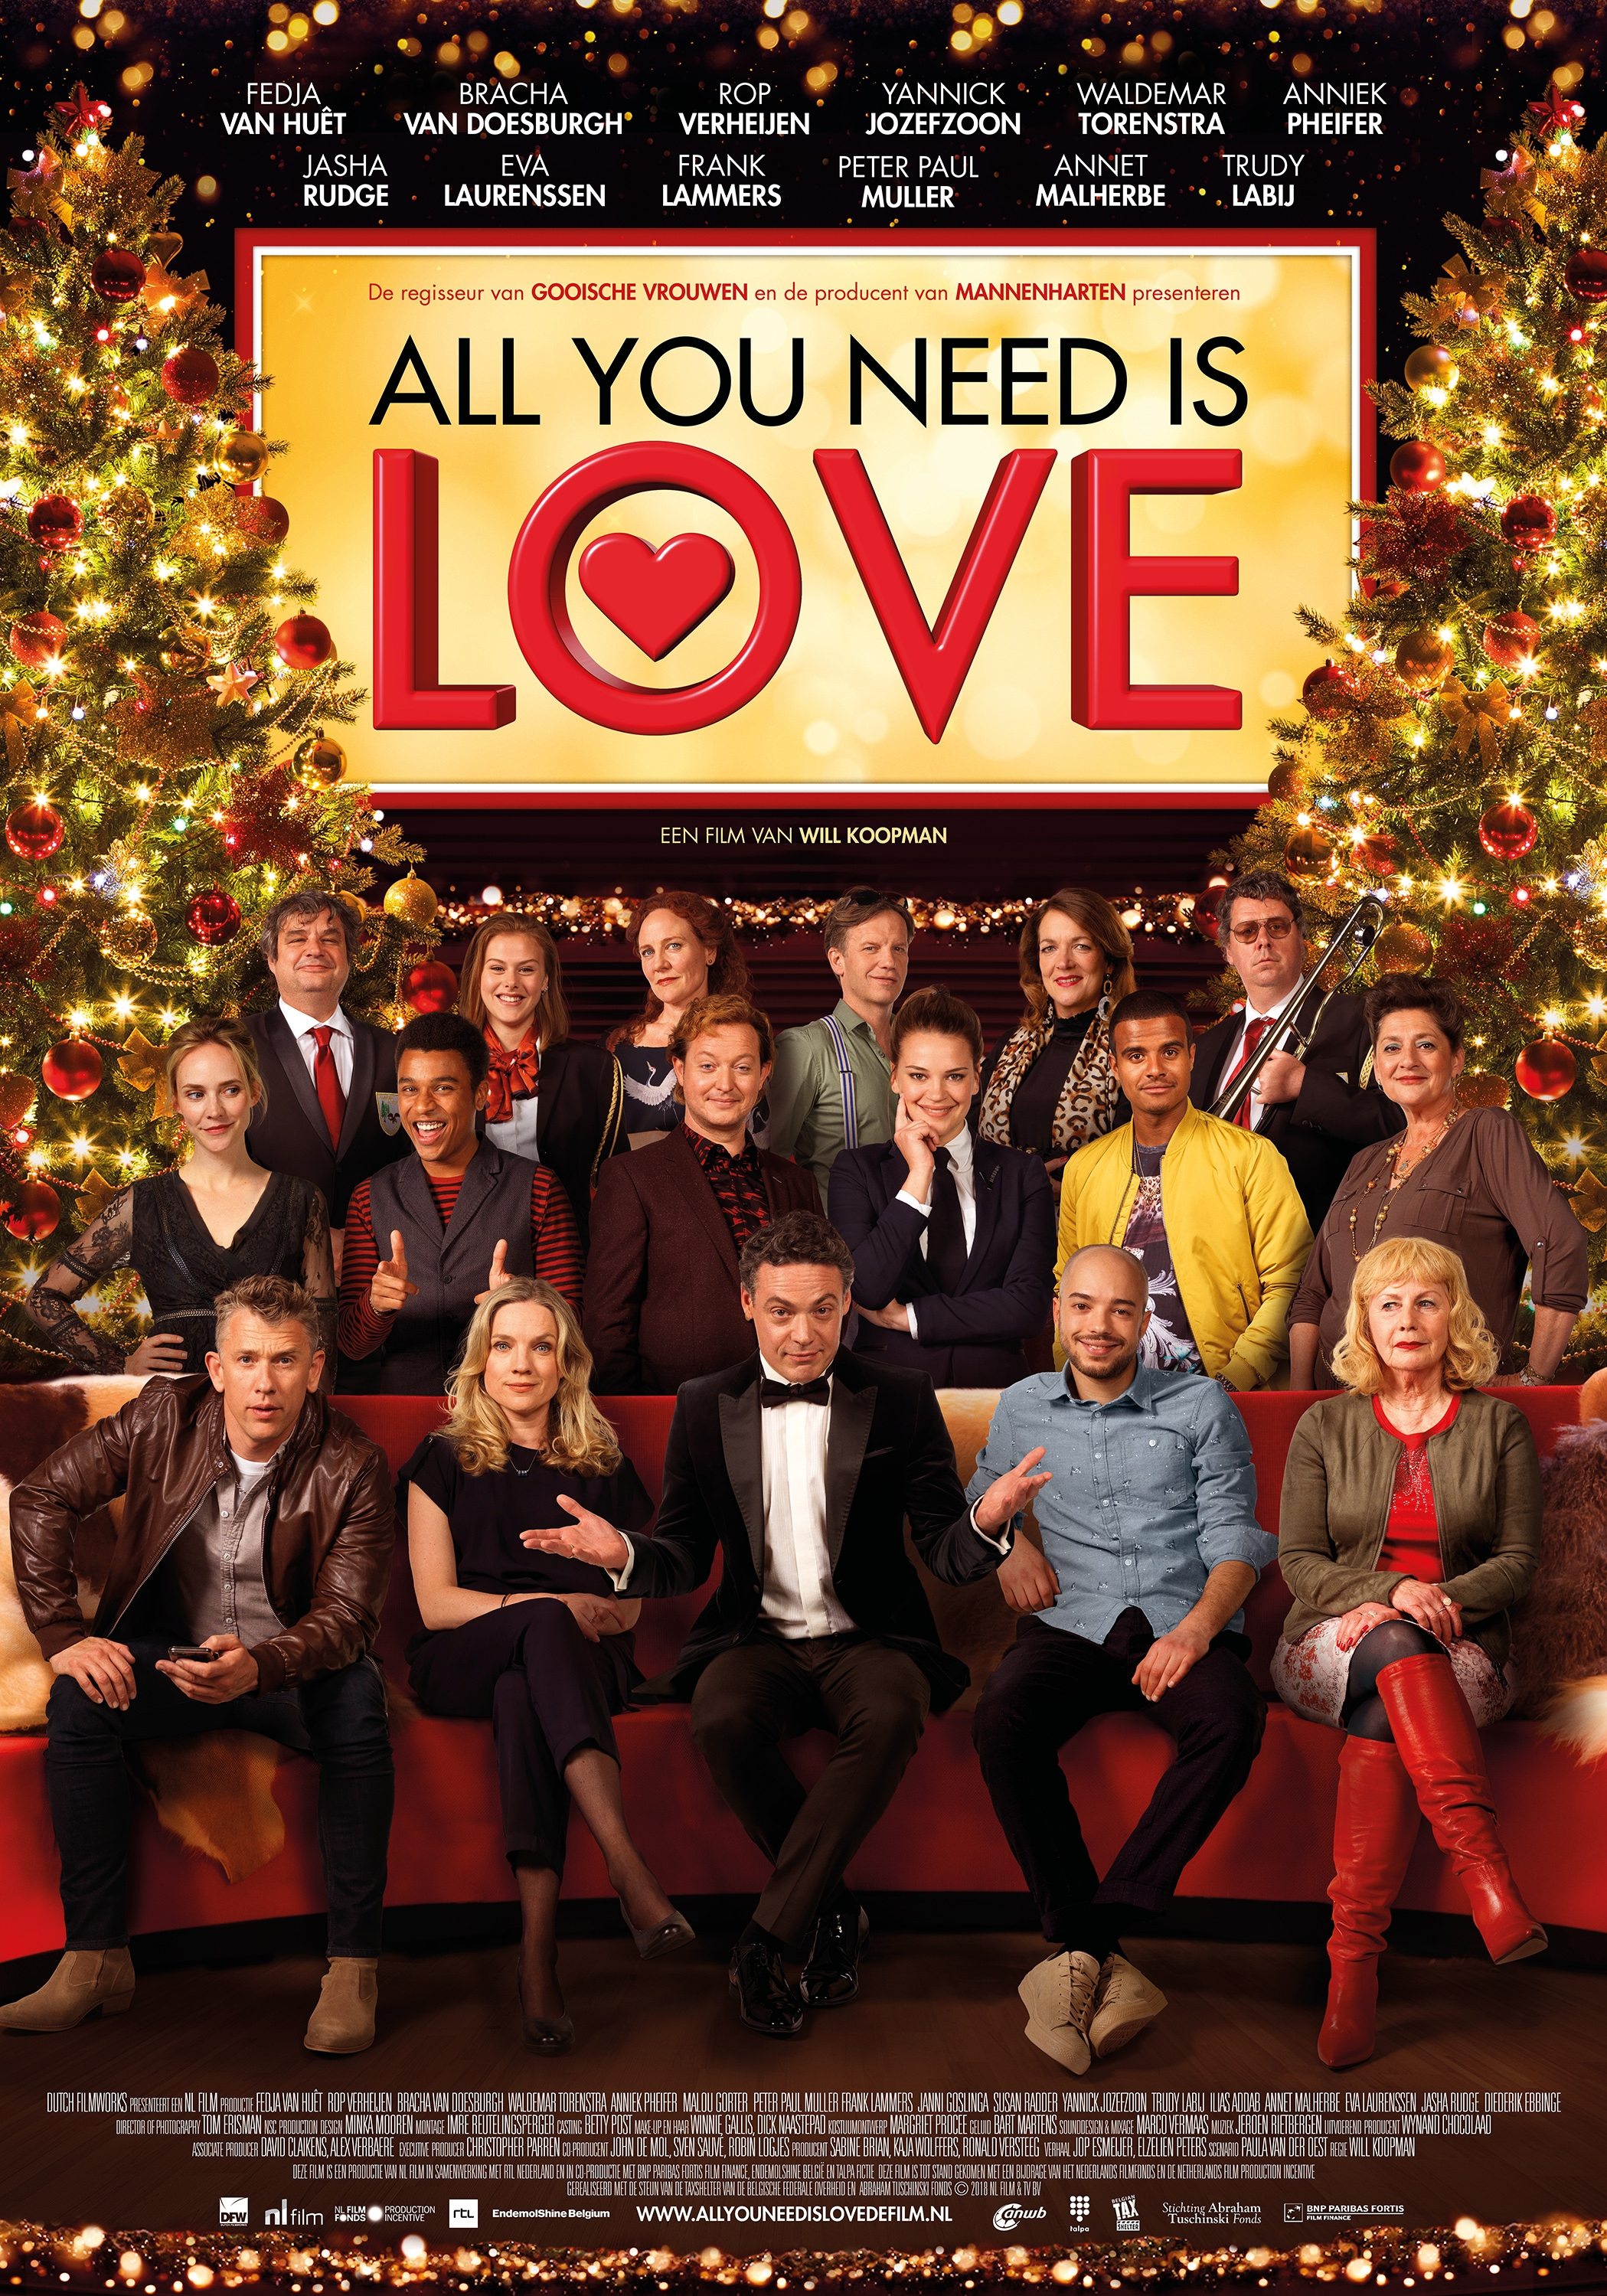 All You Need Is Love poster, © 2018 Dutch FilmWorks